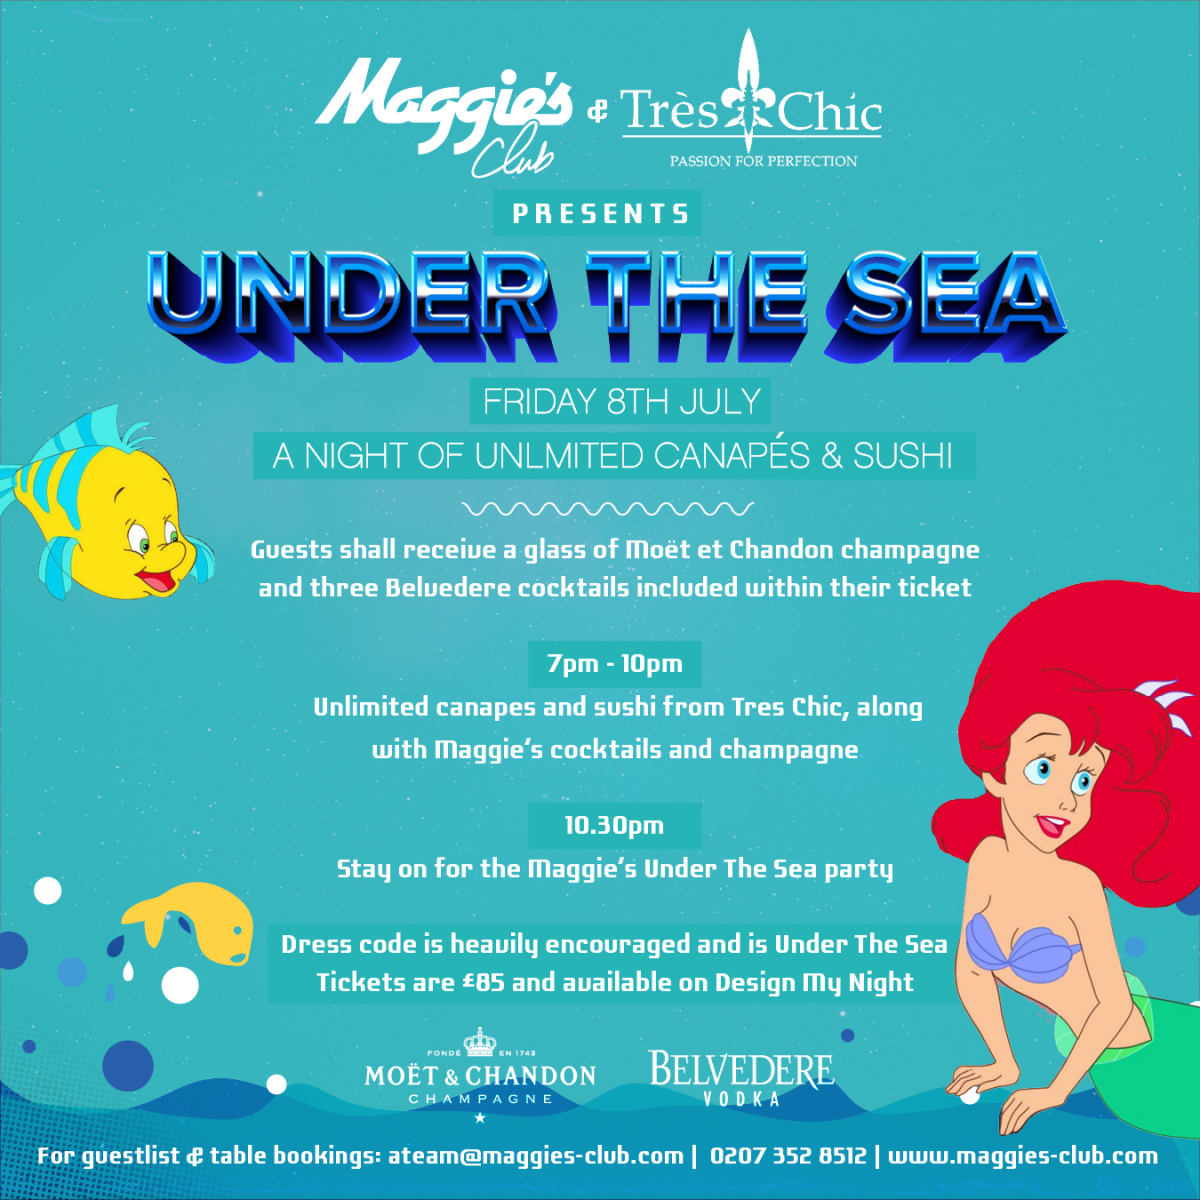 Under The Sea Supper Club